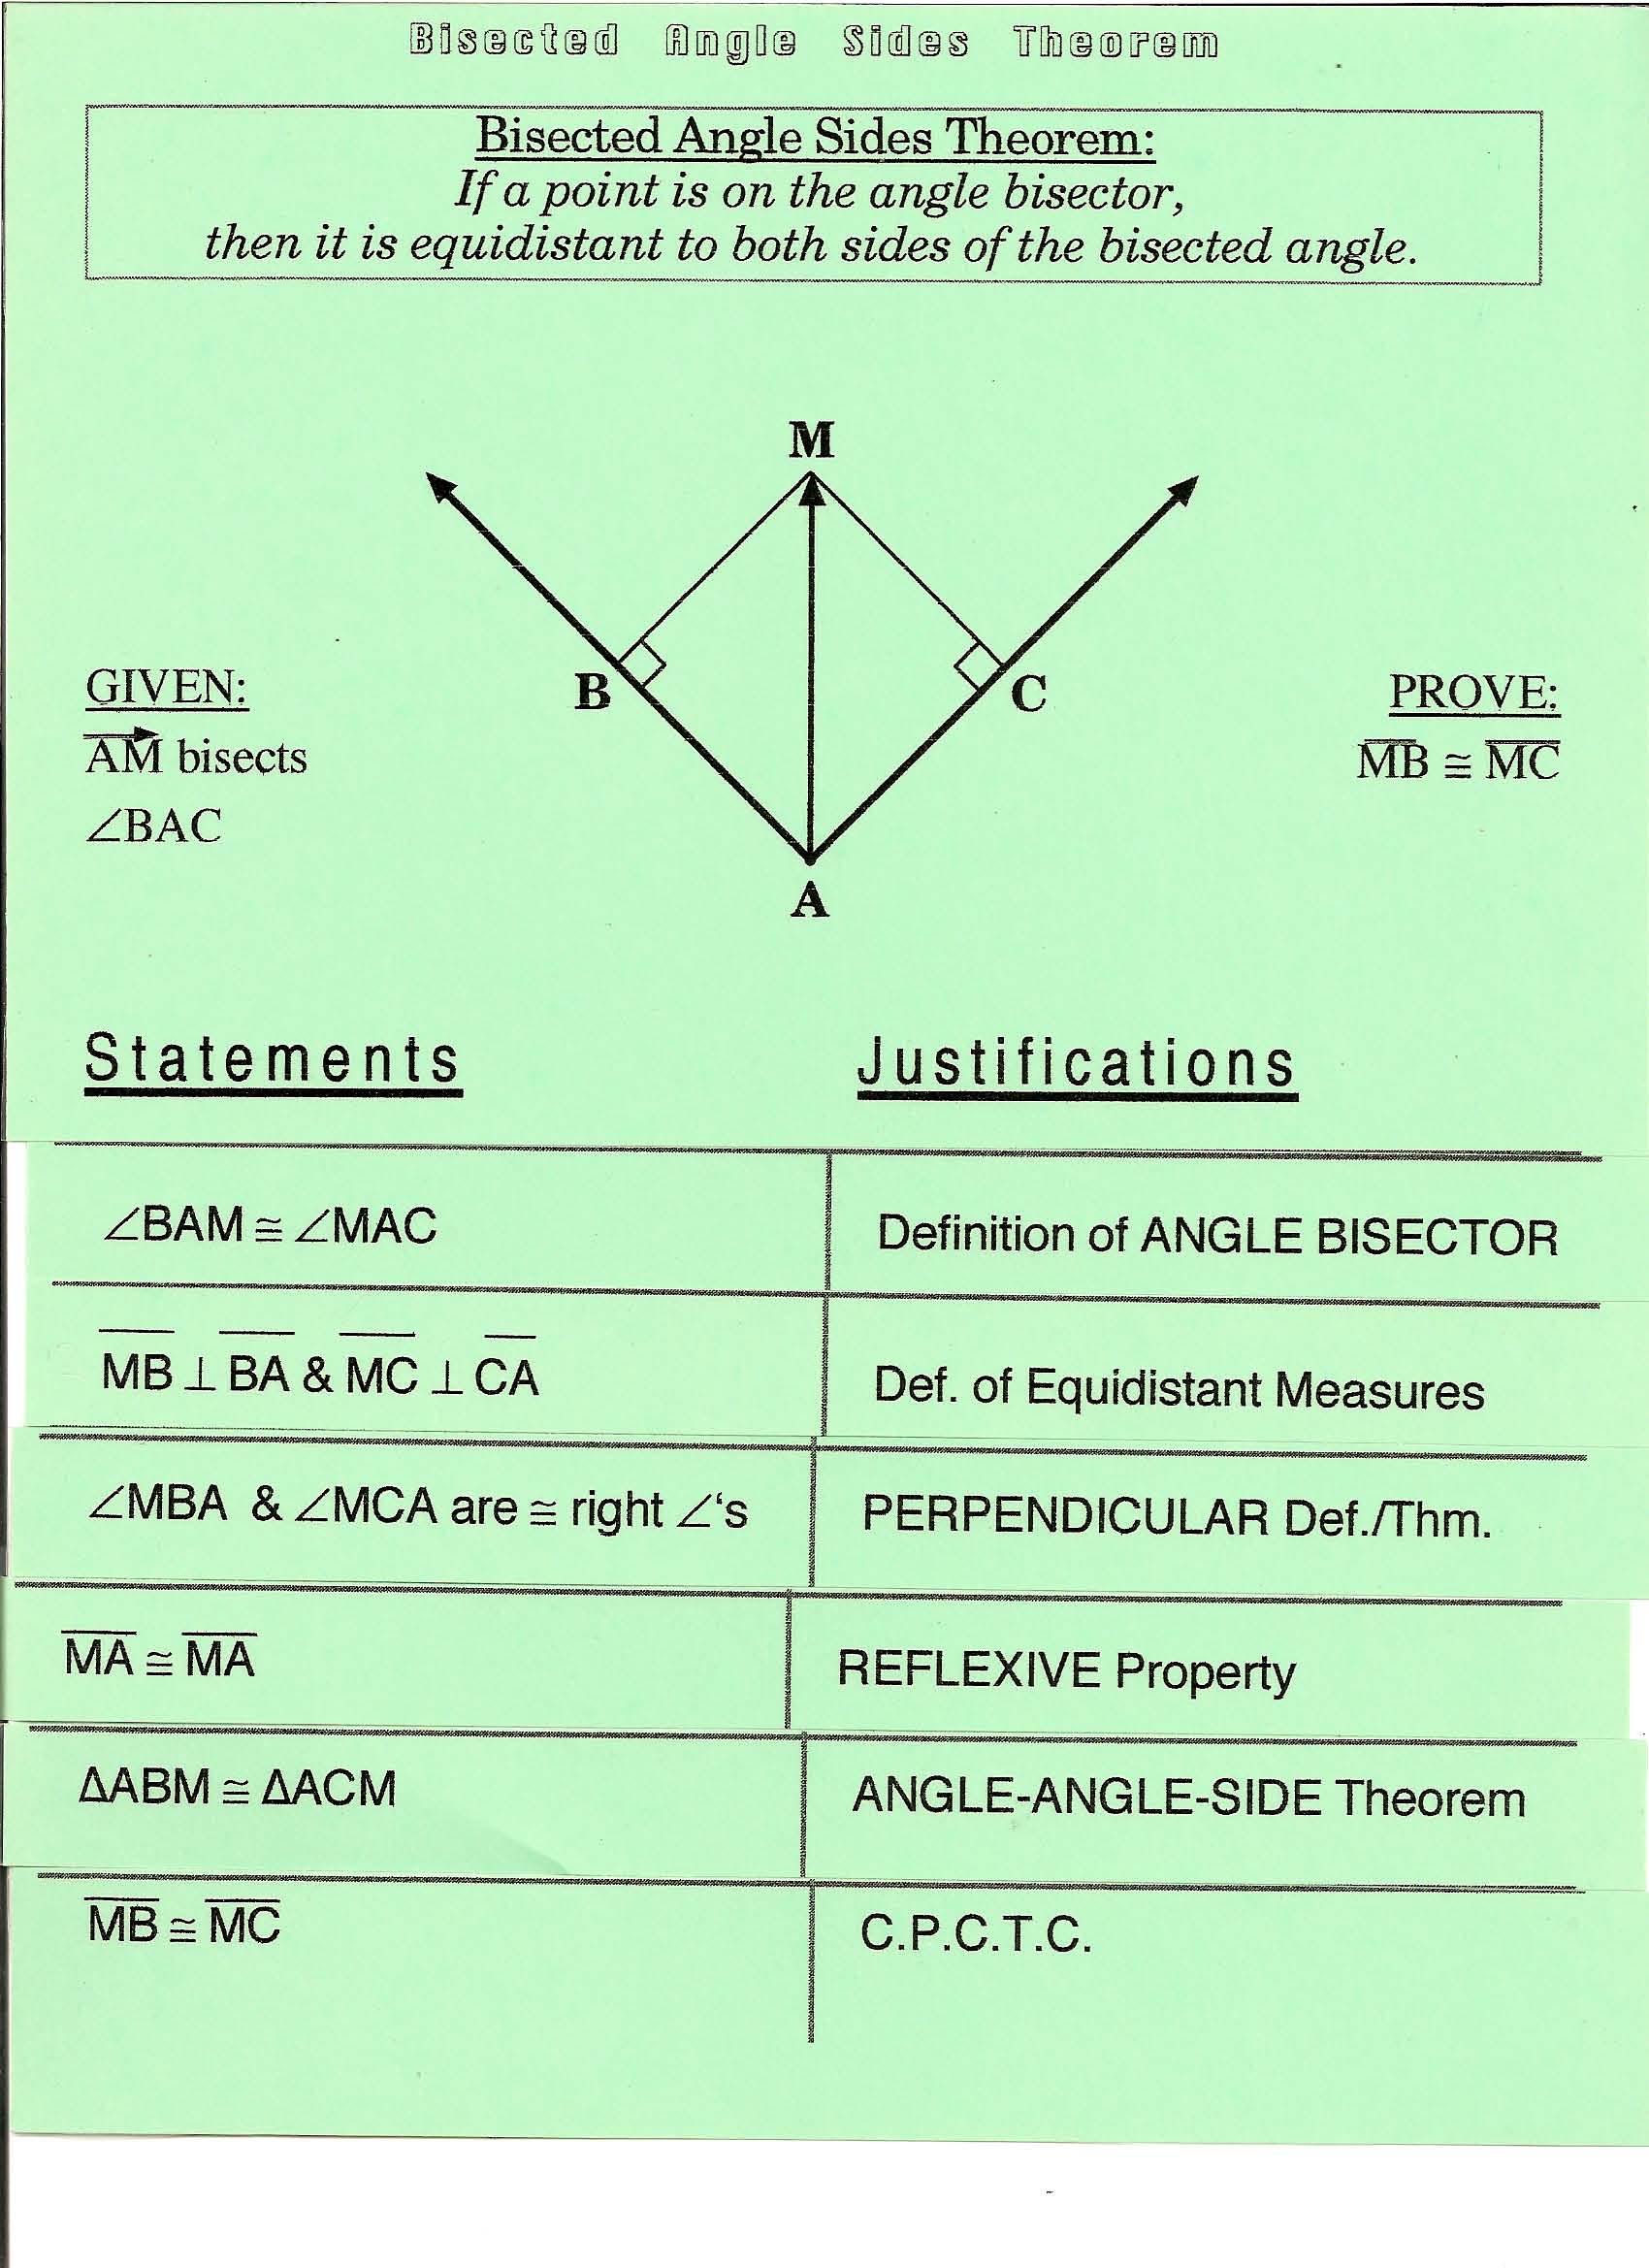 33 Angle Proofs Worksheet With Answers